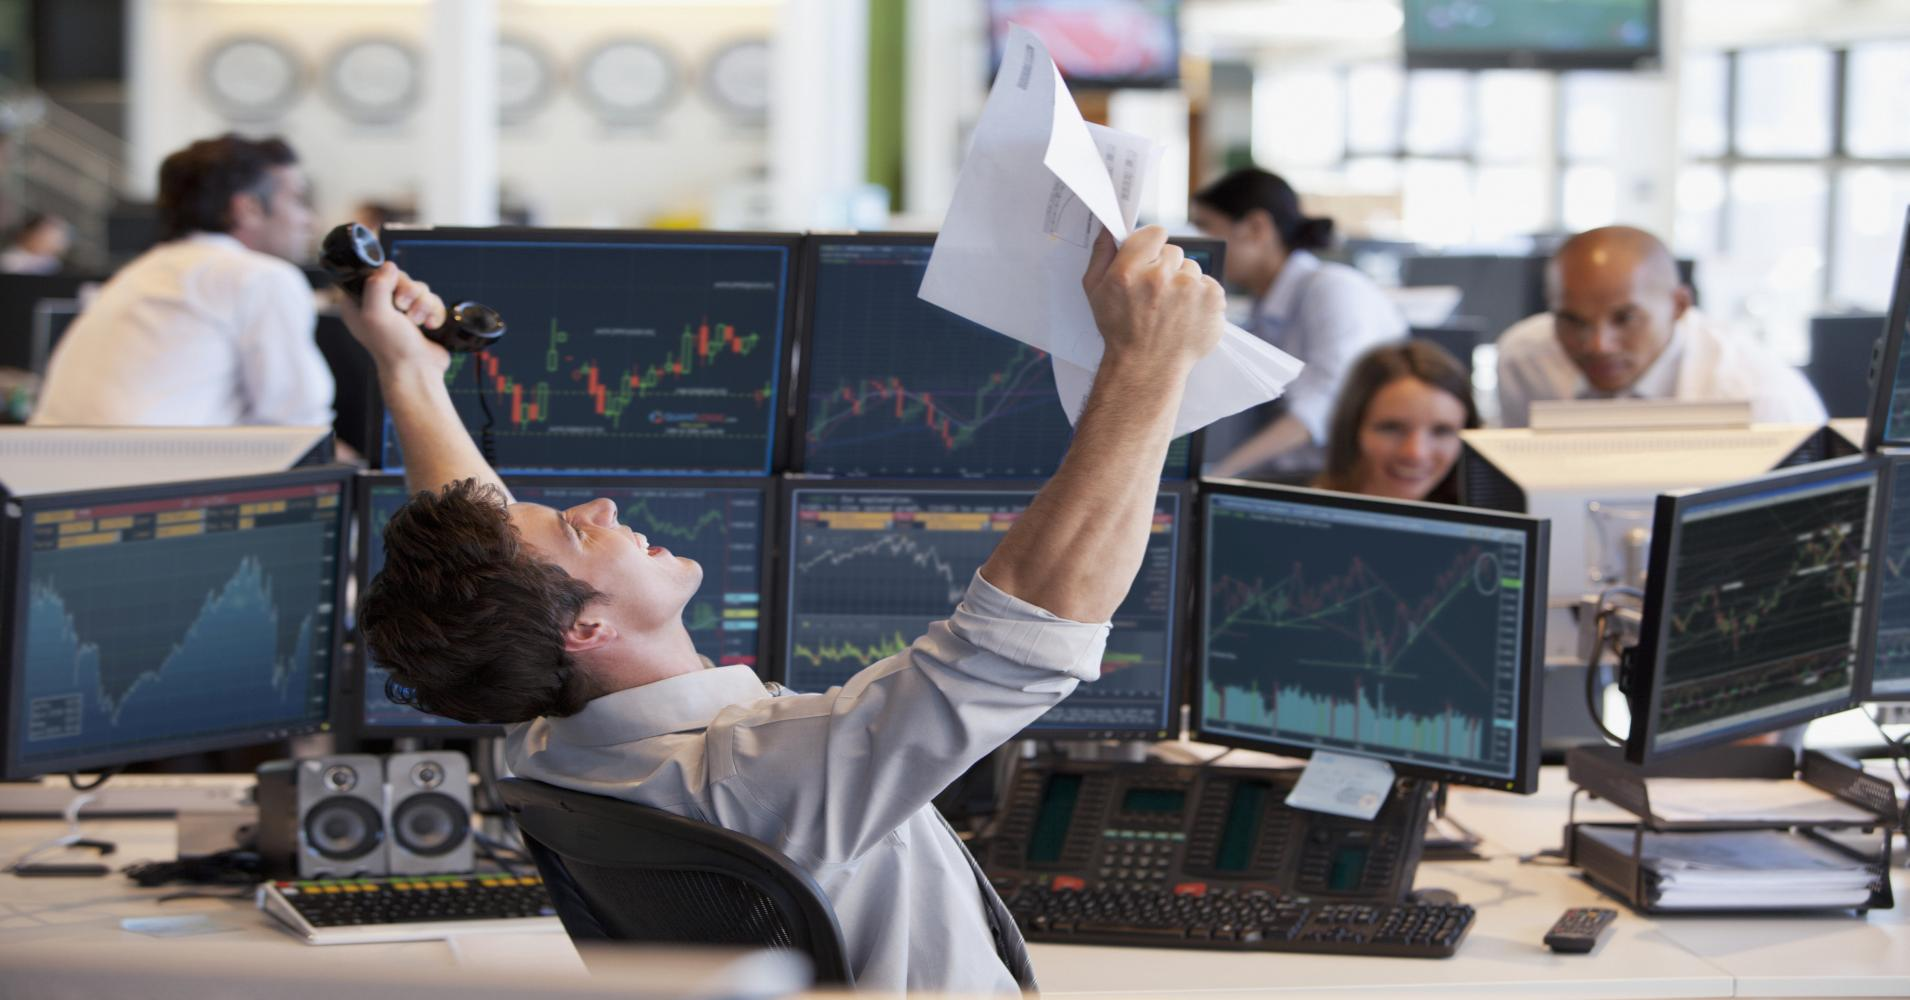 5 professional tips to become a successful trader